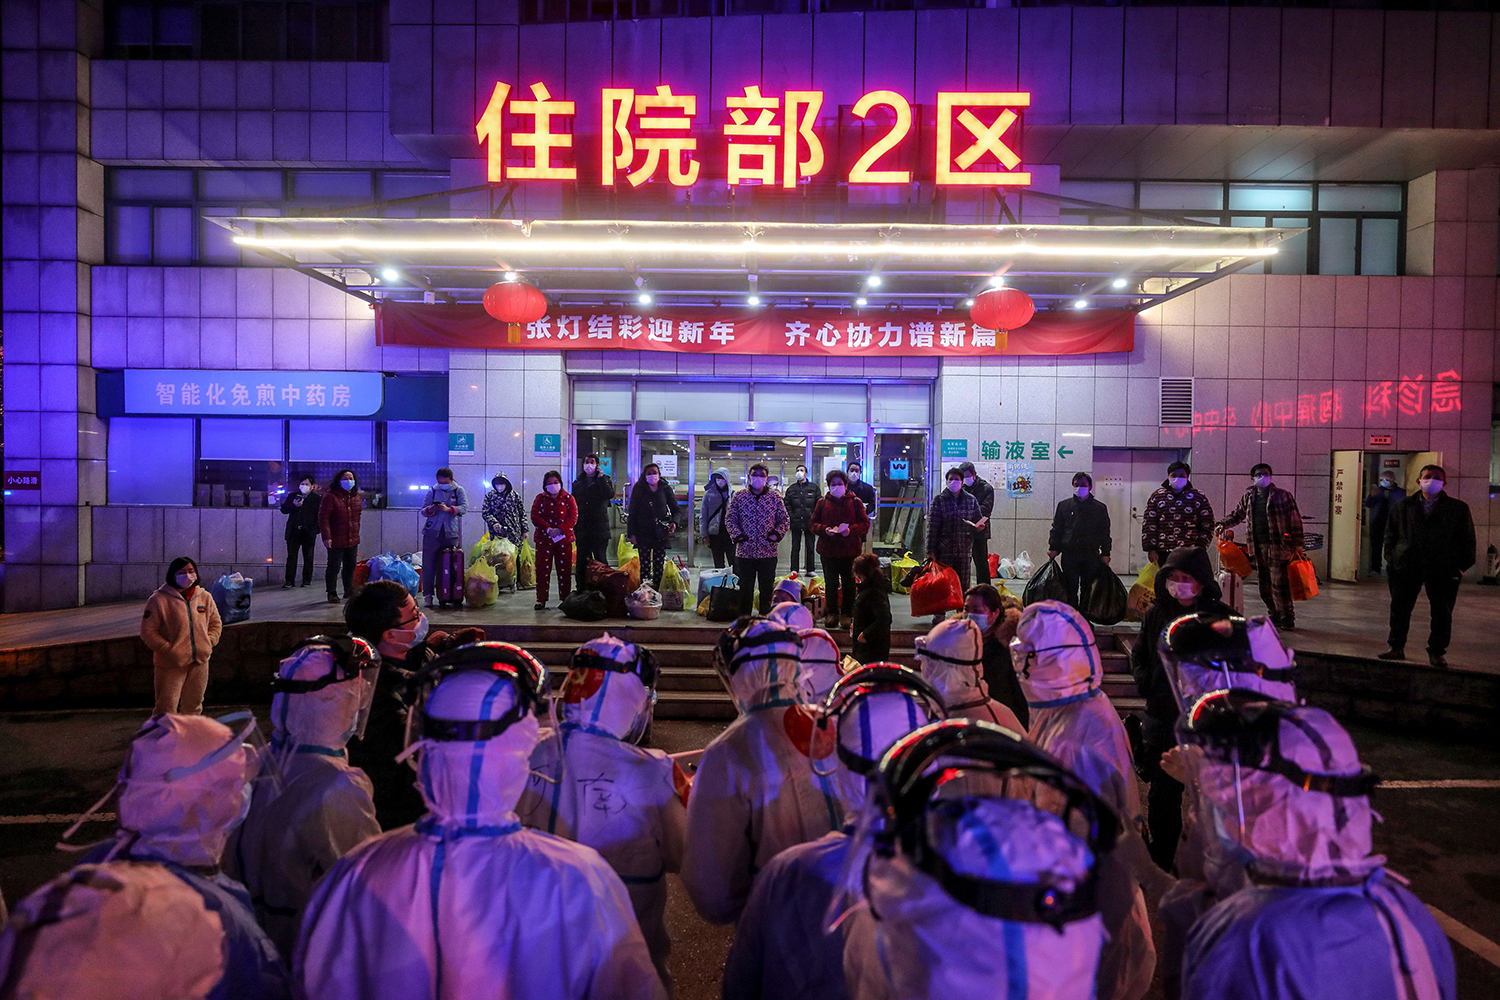 Coronavirus patients in Wuhan, China, line up at Wuhan No. 5 Hospital on March 3 as they wait to be transferred to Leishenshan Hospital, one of two new field hospitals built in under two weeks specifically for those infected by the virus. STR/AFP via Getty Images